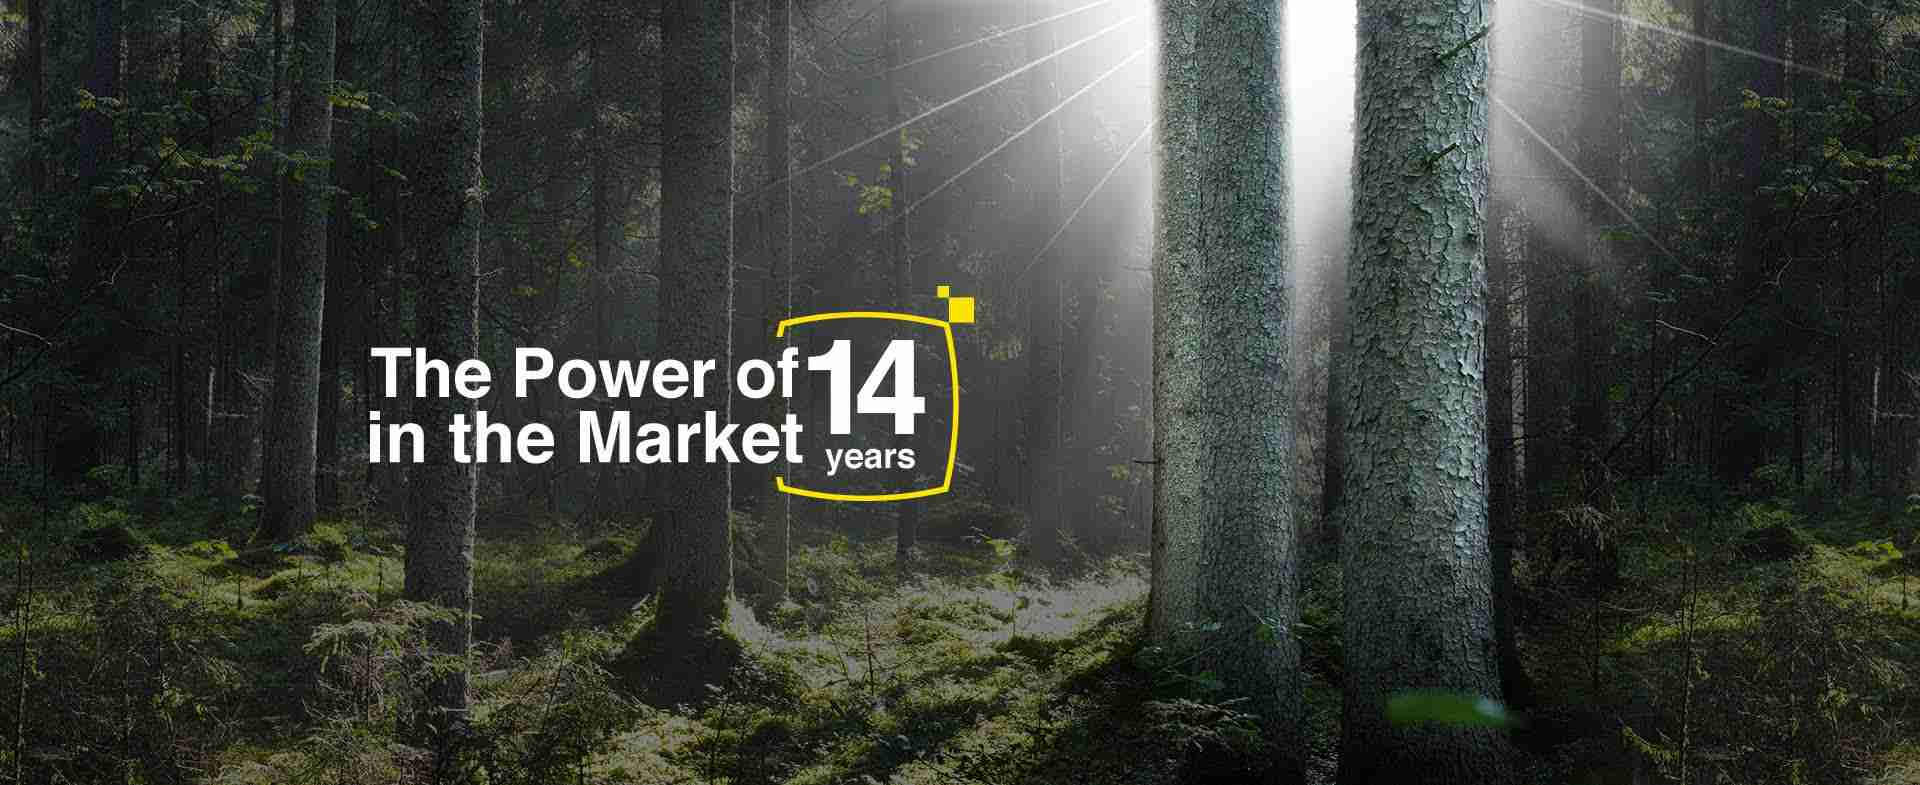 The power fo 11 years in the market